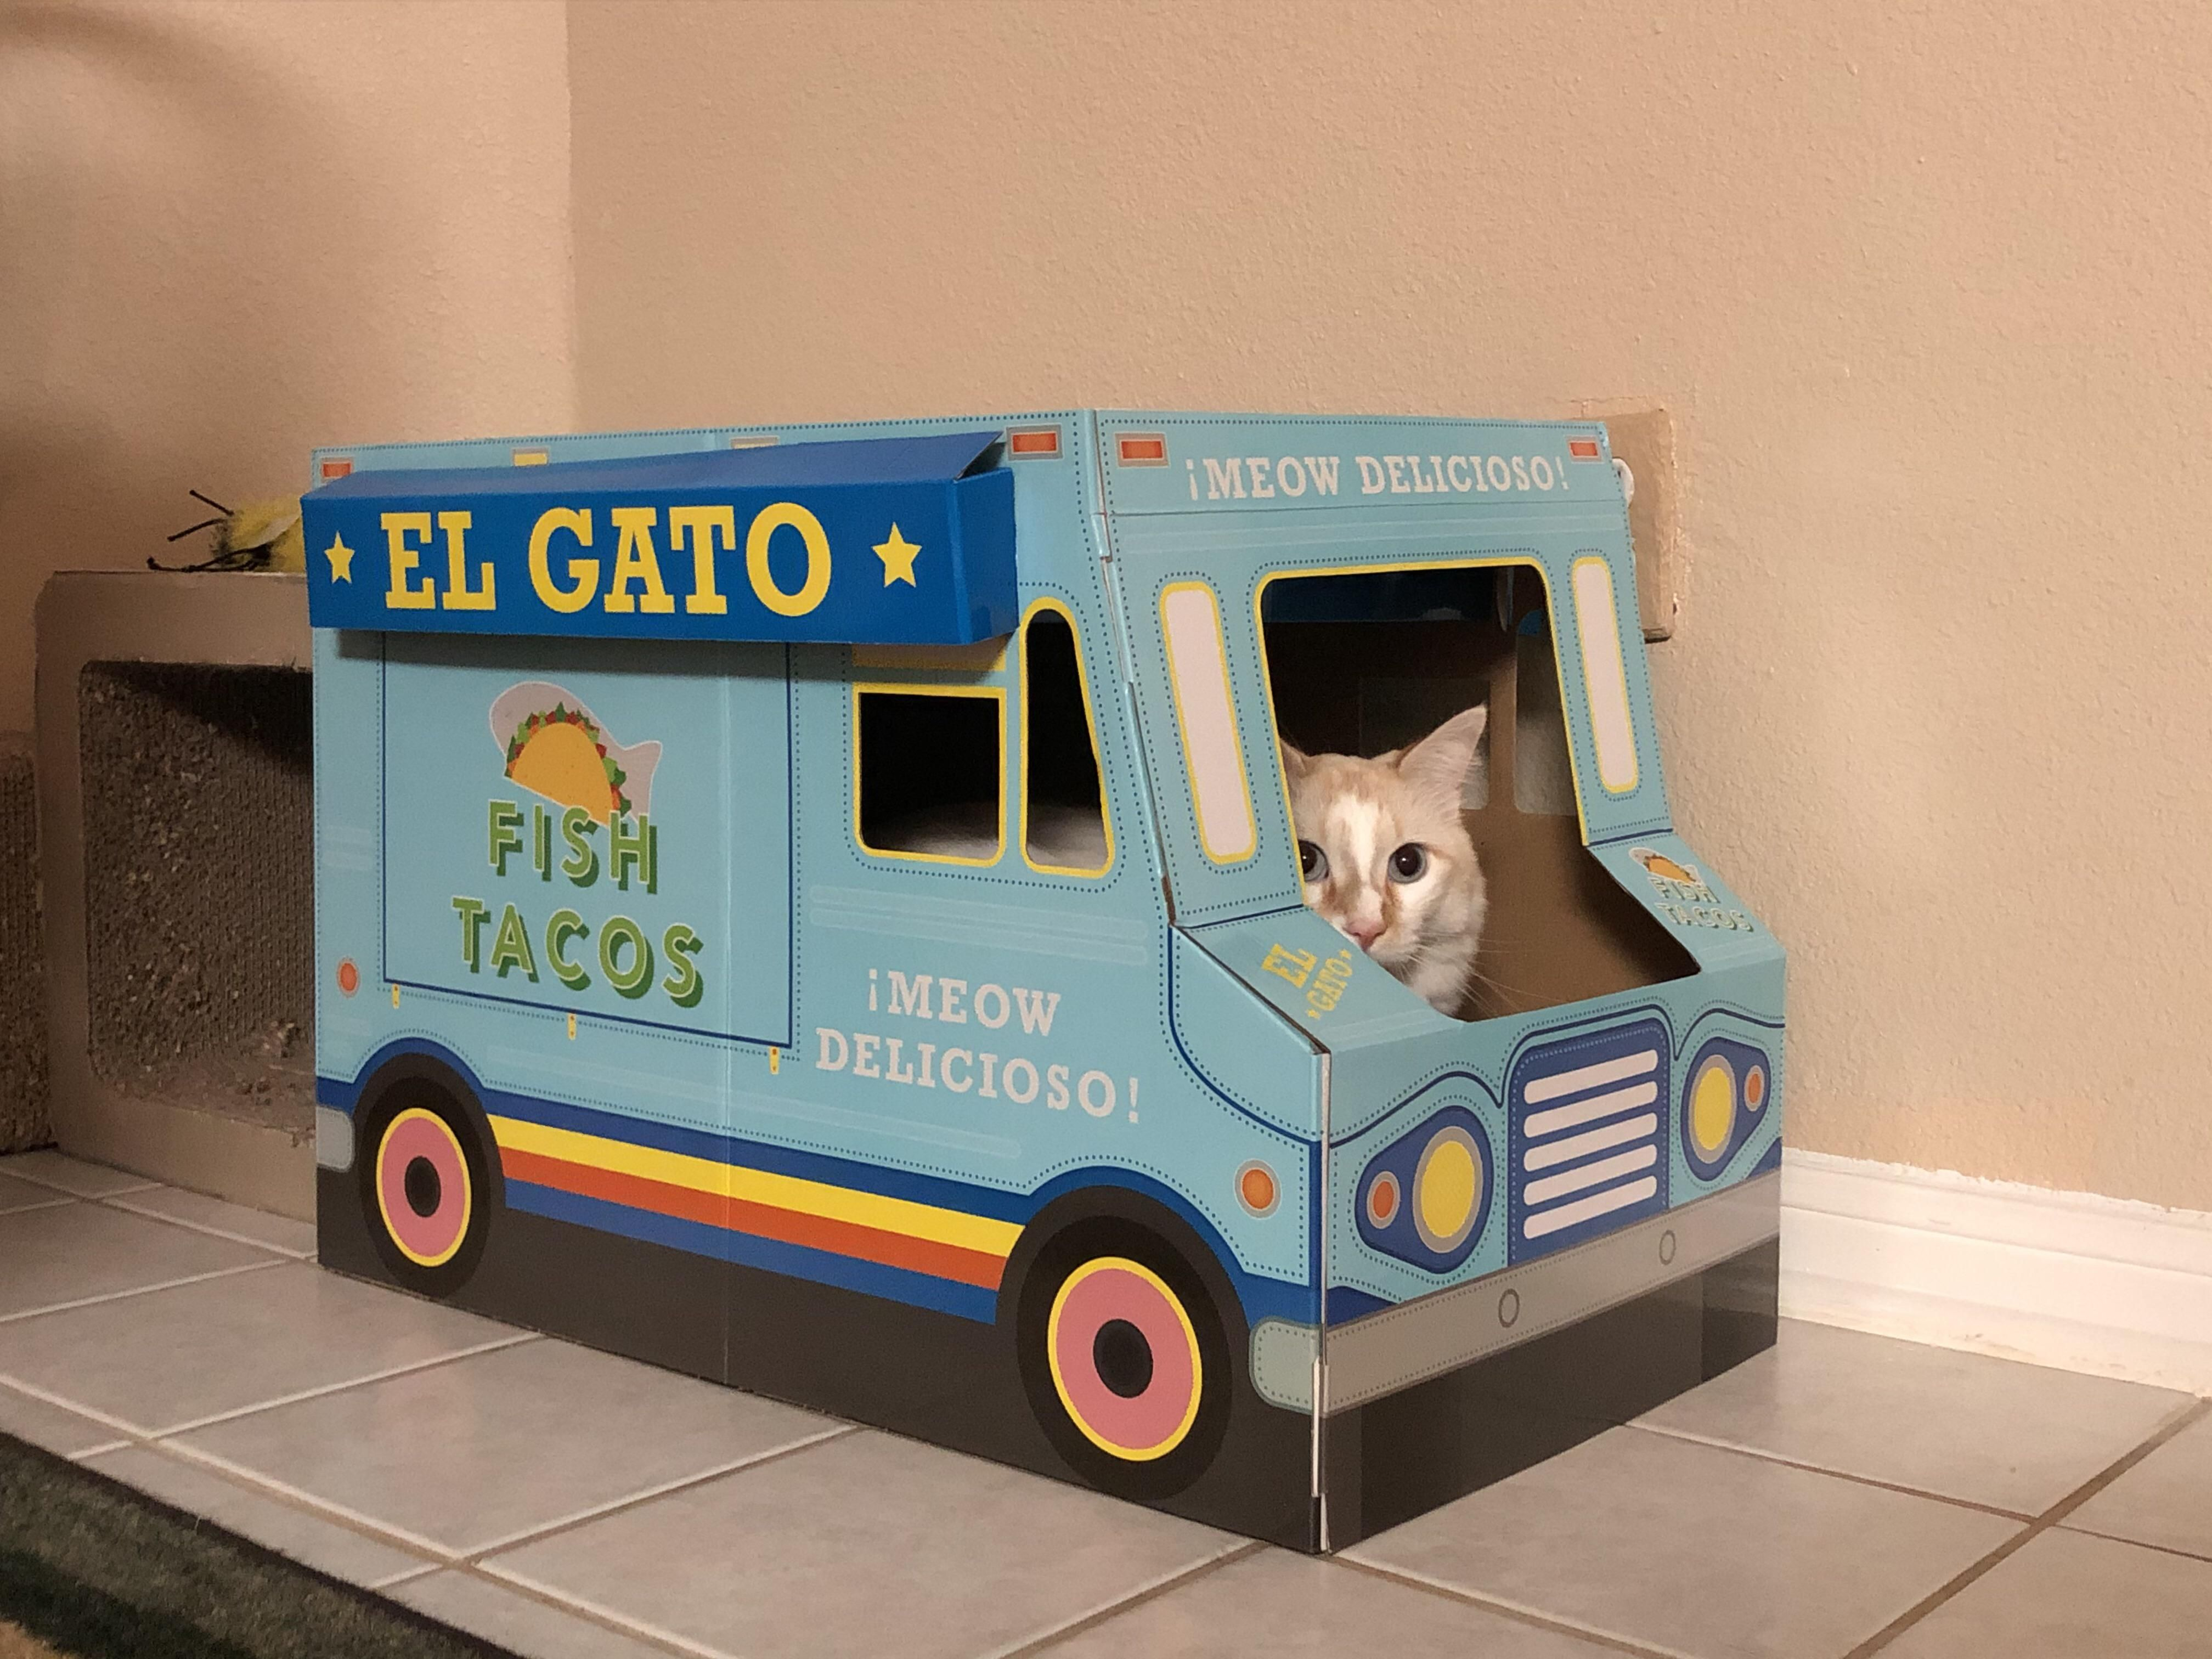 My parents cat has started his own business. 10/10 recommend